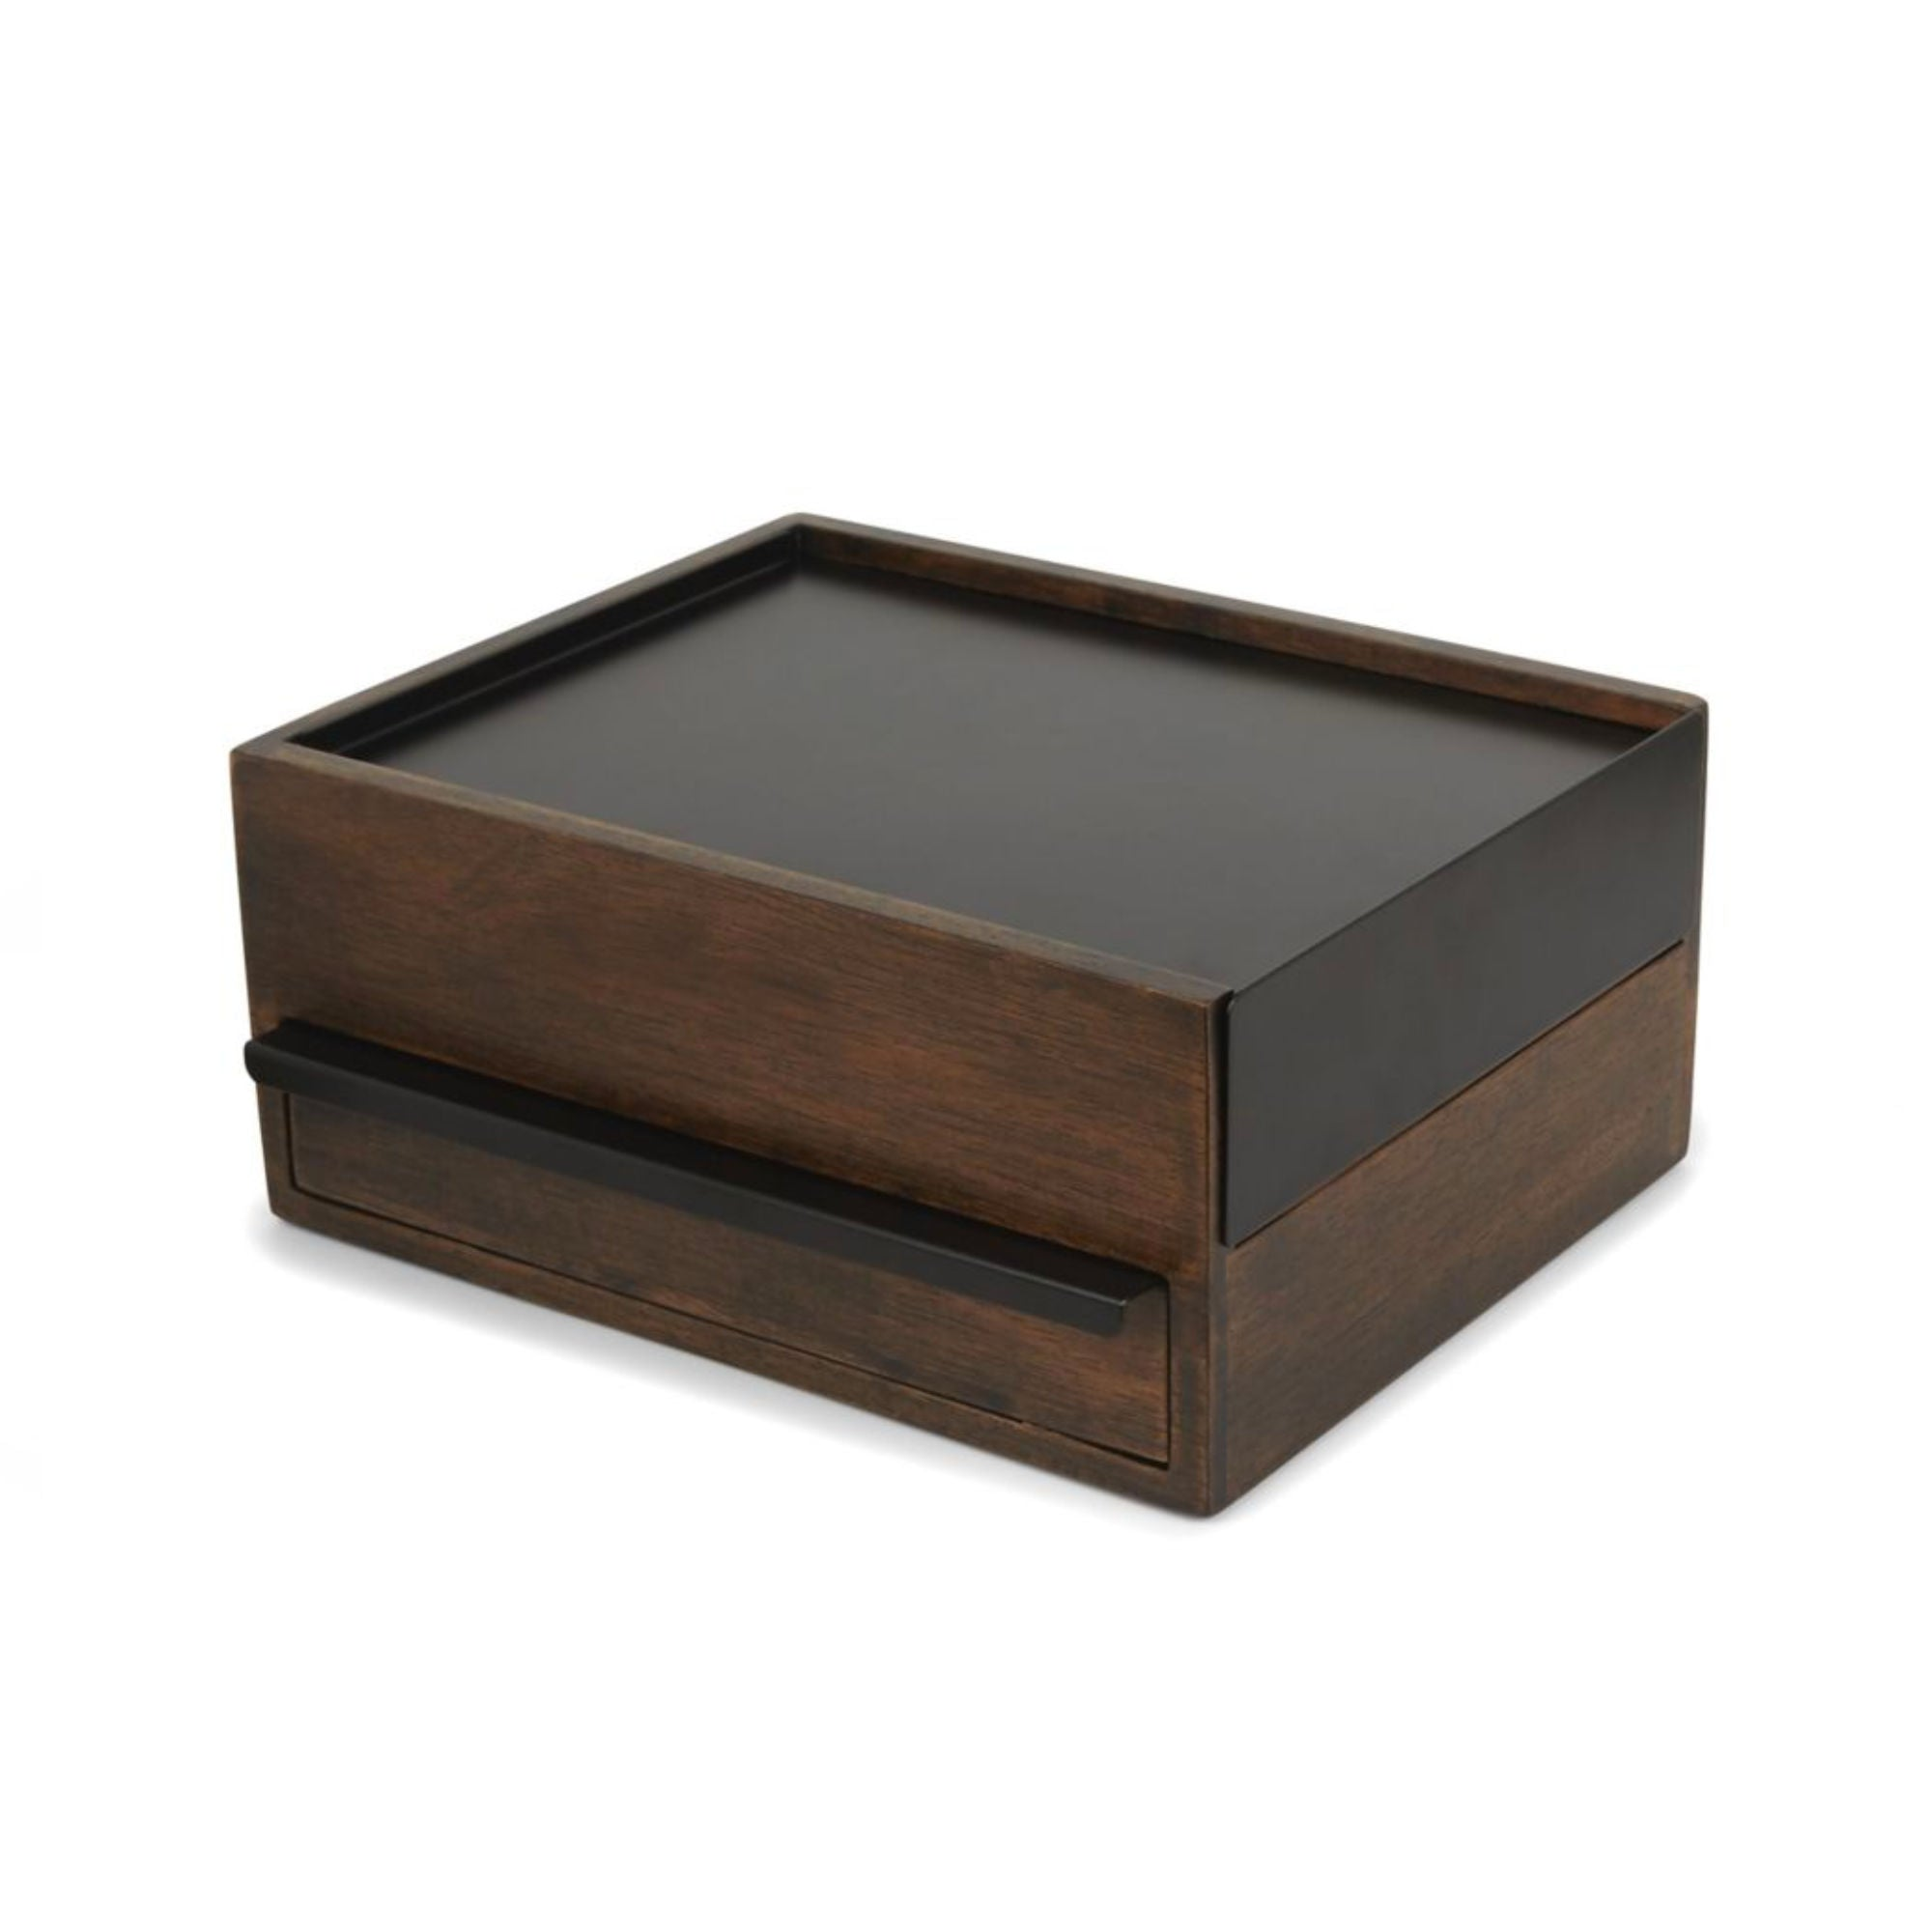 Stowit jewelry box walnut, large